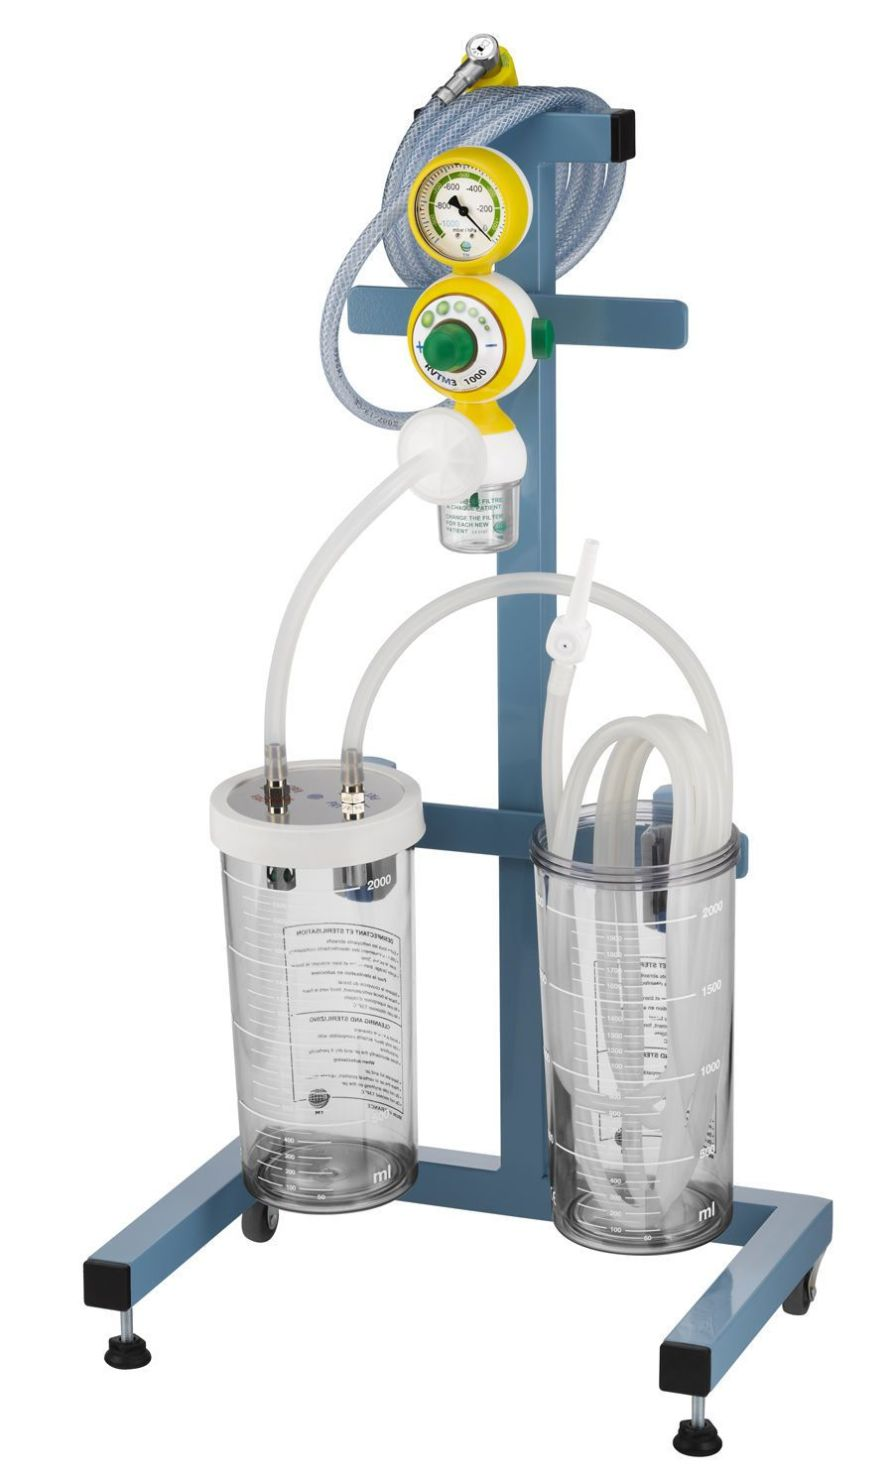 Surgical suction pump / on casters / vacuum-powered 1947x series Technologie Medicale